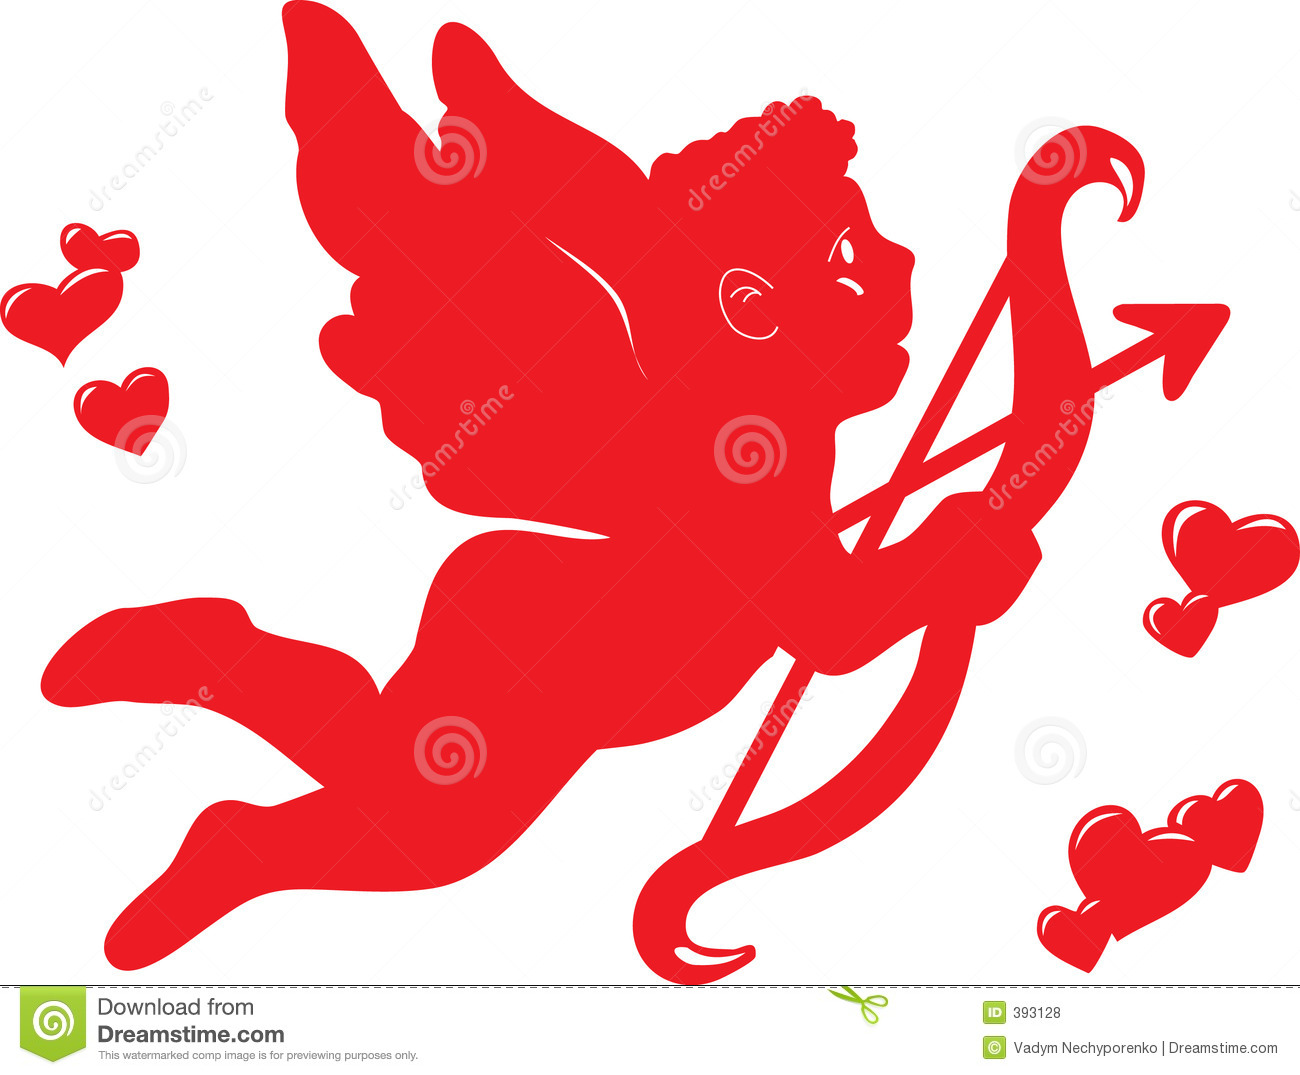 Cupidon, angel whith arrow, heart shapes, Illustrator artwork.